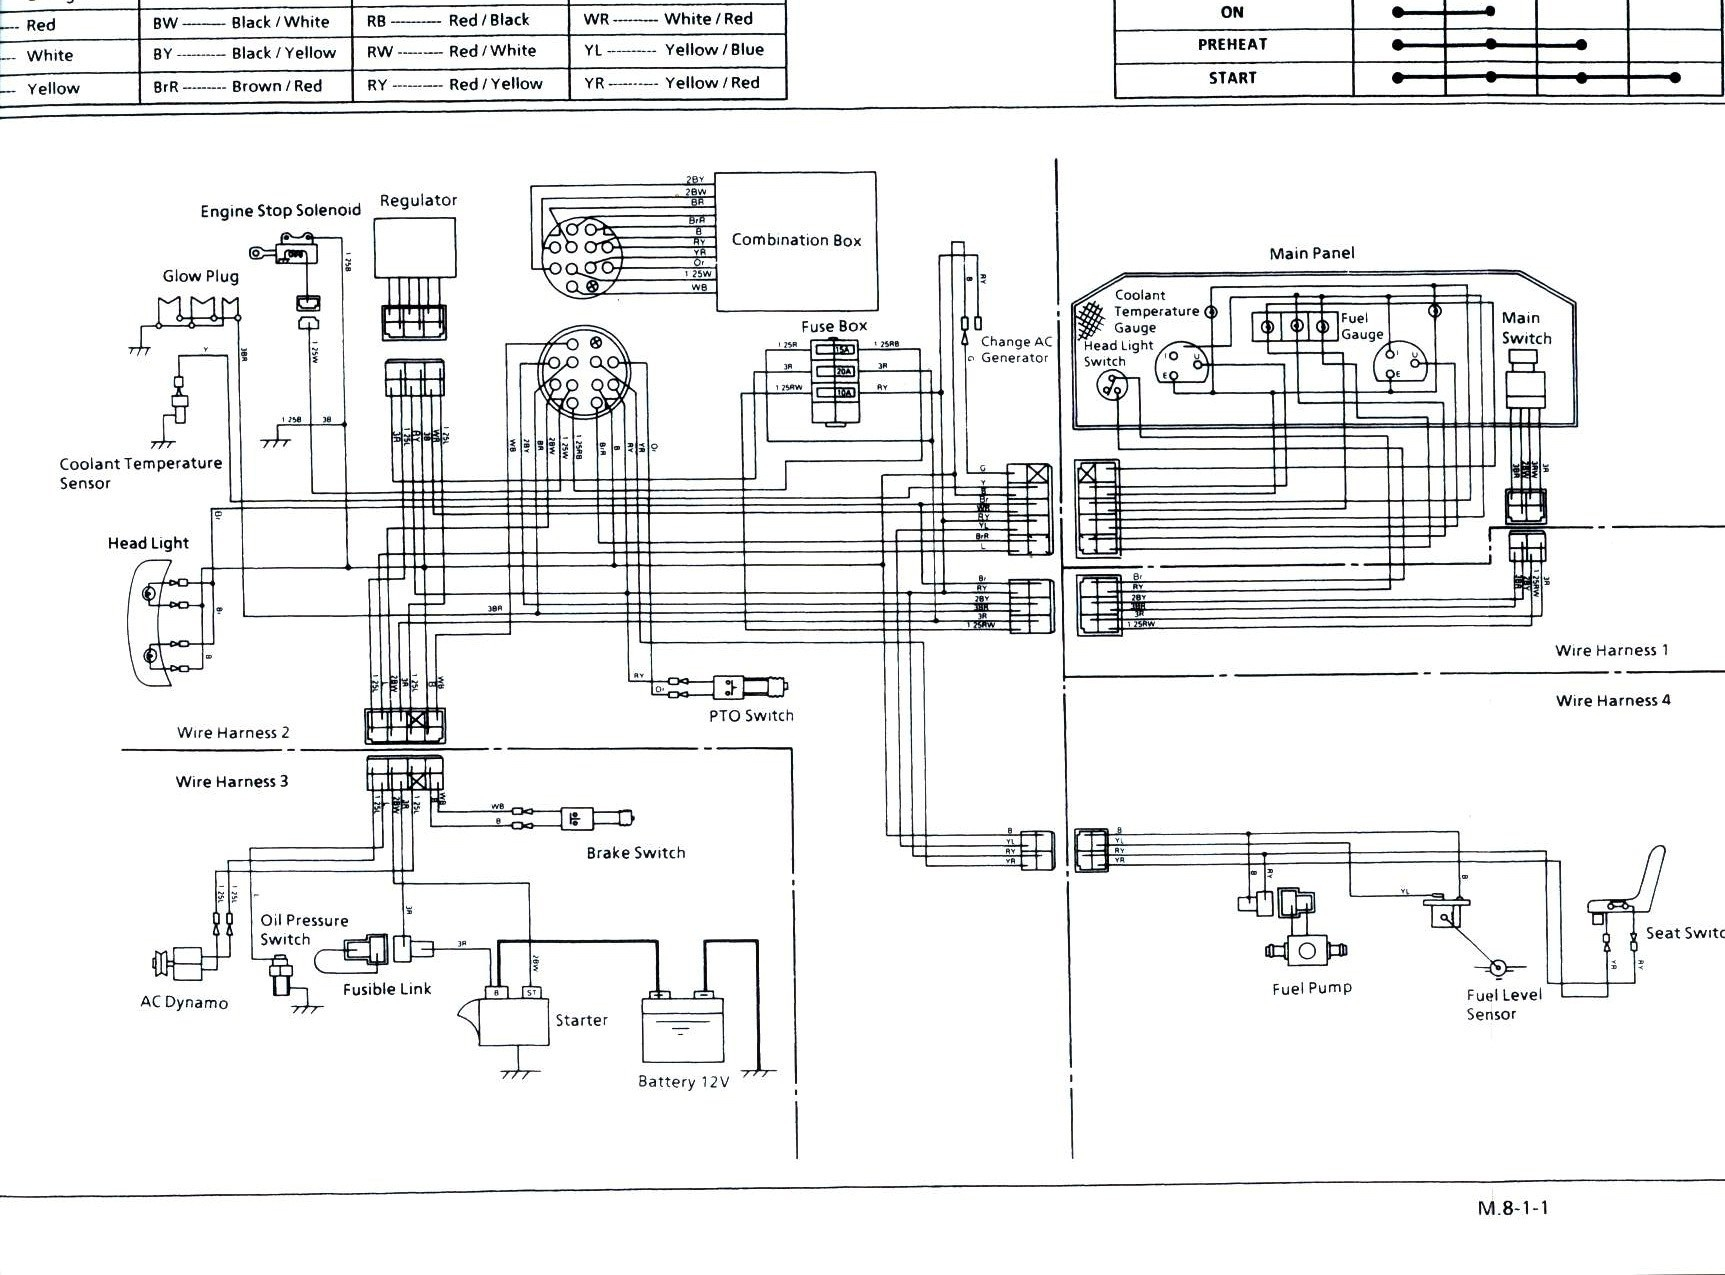 Rtv 900 Wiring Diagram - Wiring Diagram Inside Banjo Valve Wiring Diagram on valve flow diagram, valve solenoid, valve timing, valve guide, valve components diagram, valve adjustment, valve piston, valve actuator diagram, valve operation diagram, valve plug, valve cut sheet, valve packing diagram, valve assembly, valve compressor, valve radio, valve valve, valve schematic, valve regulator, valve system,